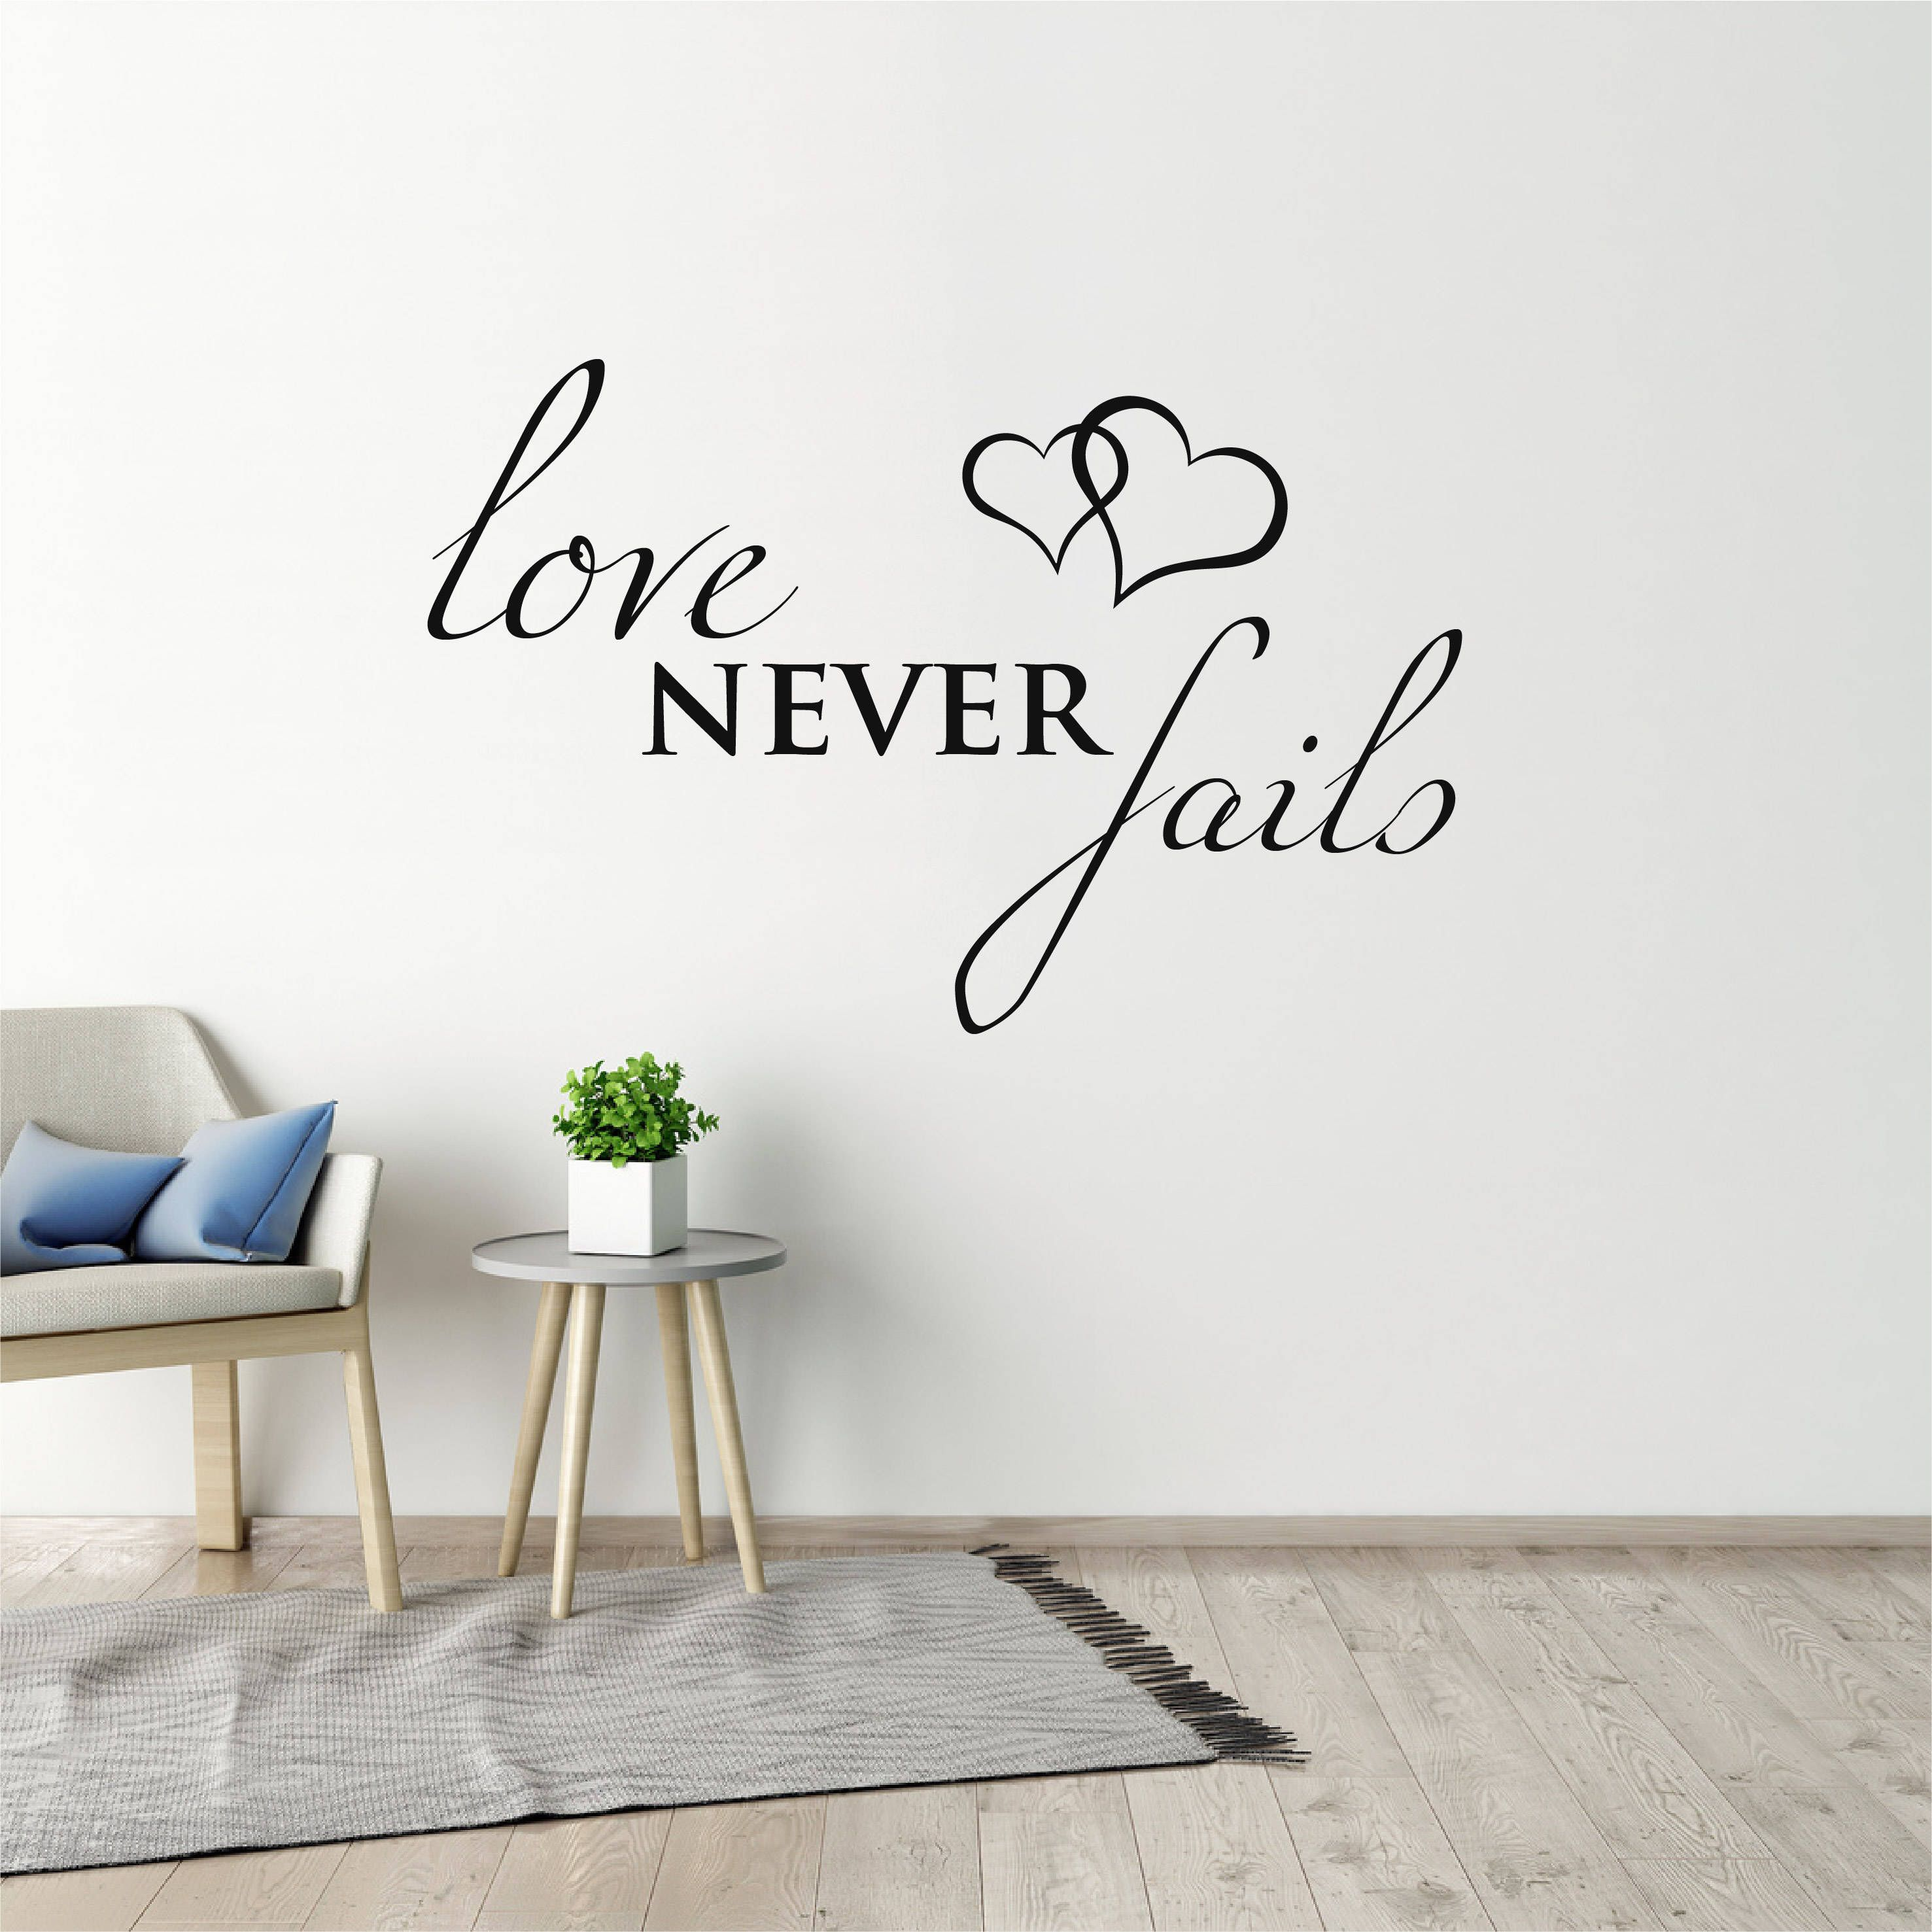 Scripture Wall Sticker Quote Bible Verse Wall Decal Love Never - Wall decals quotes bible